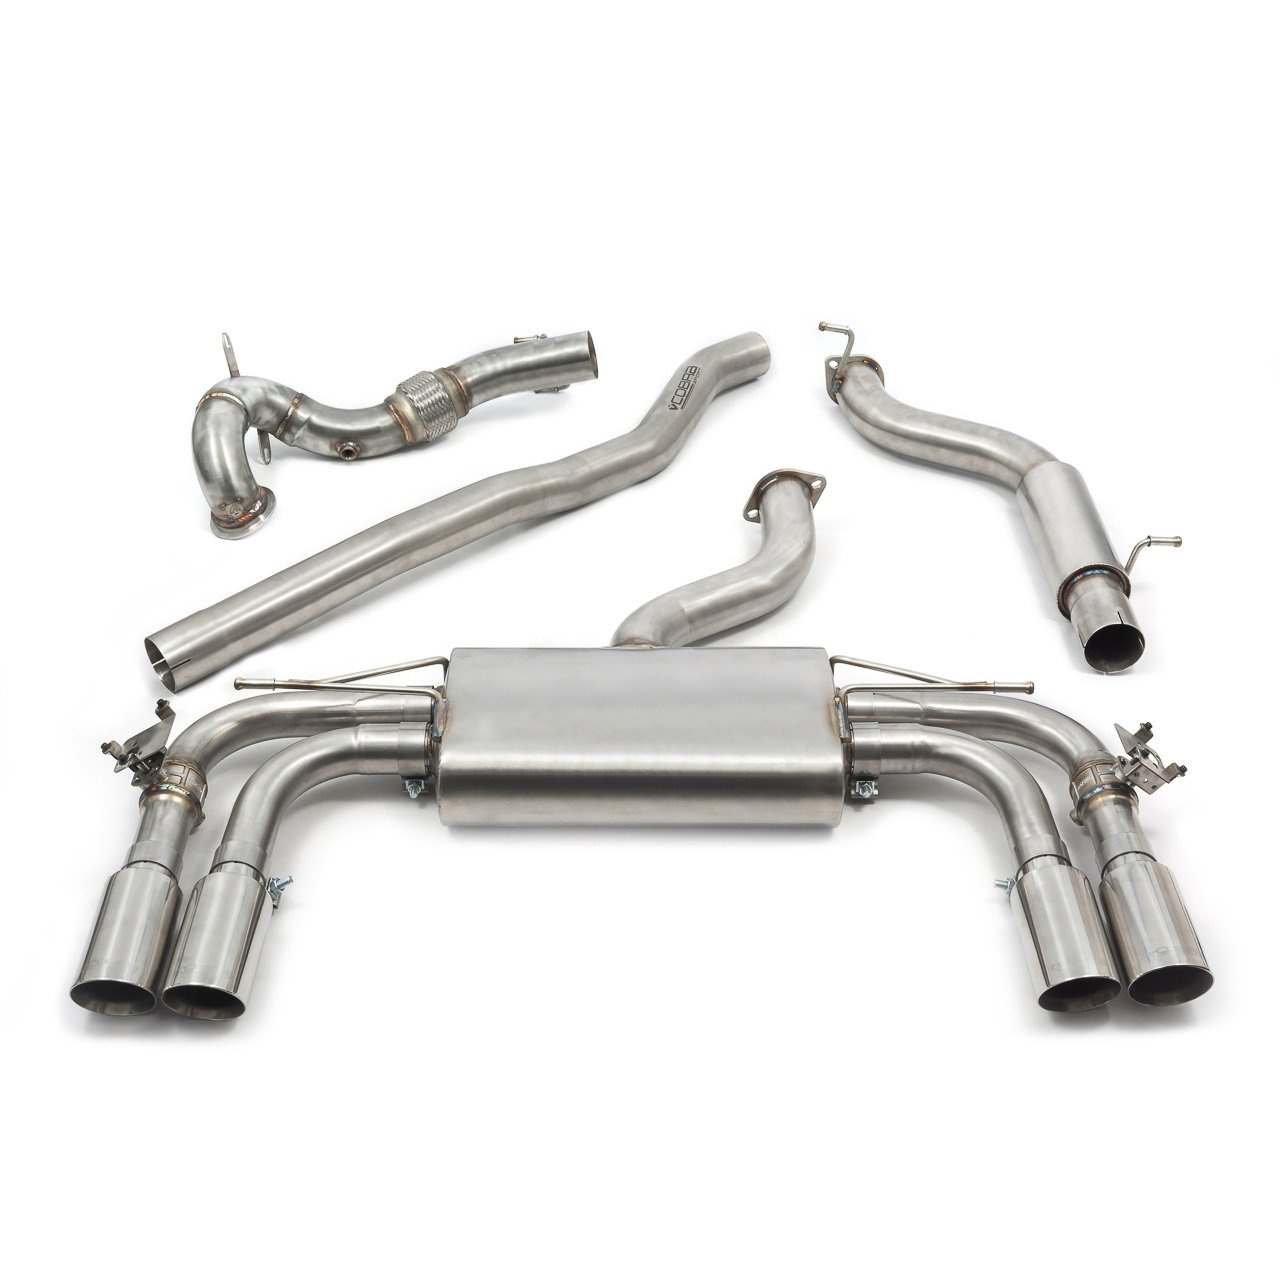 Audi S3 (8V) Saloon (Valved) Turbo Back Performance Exhaust